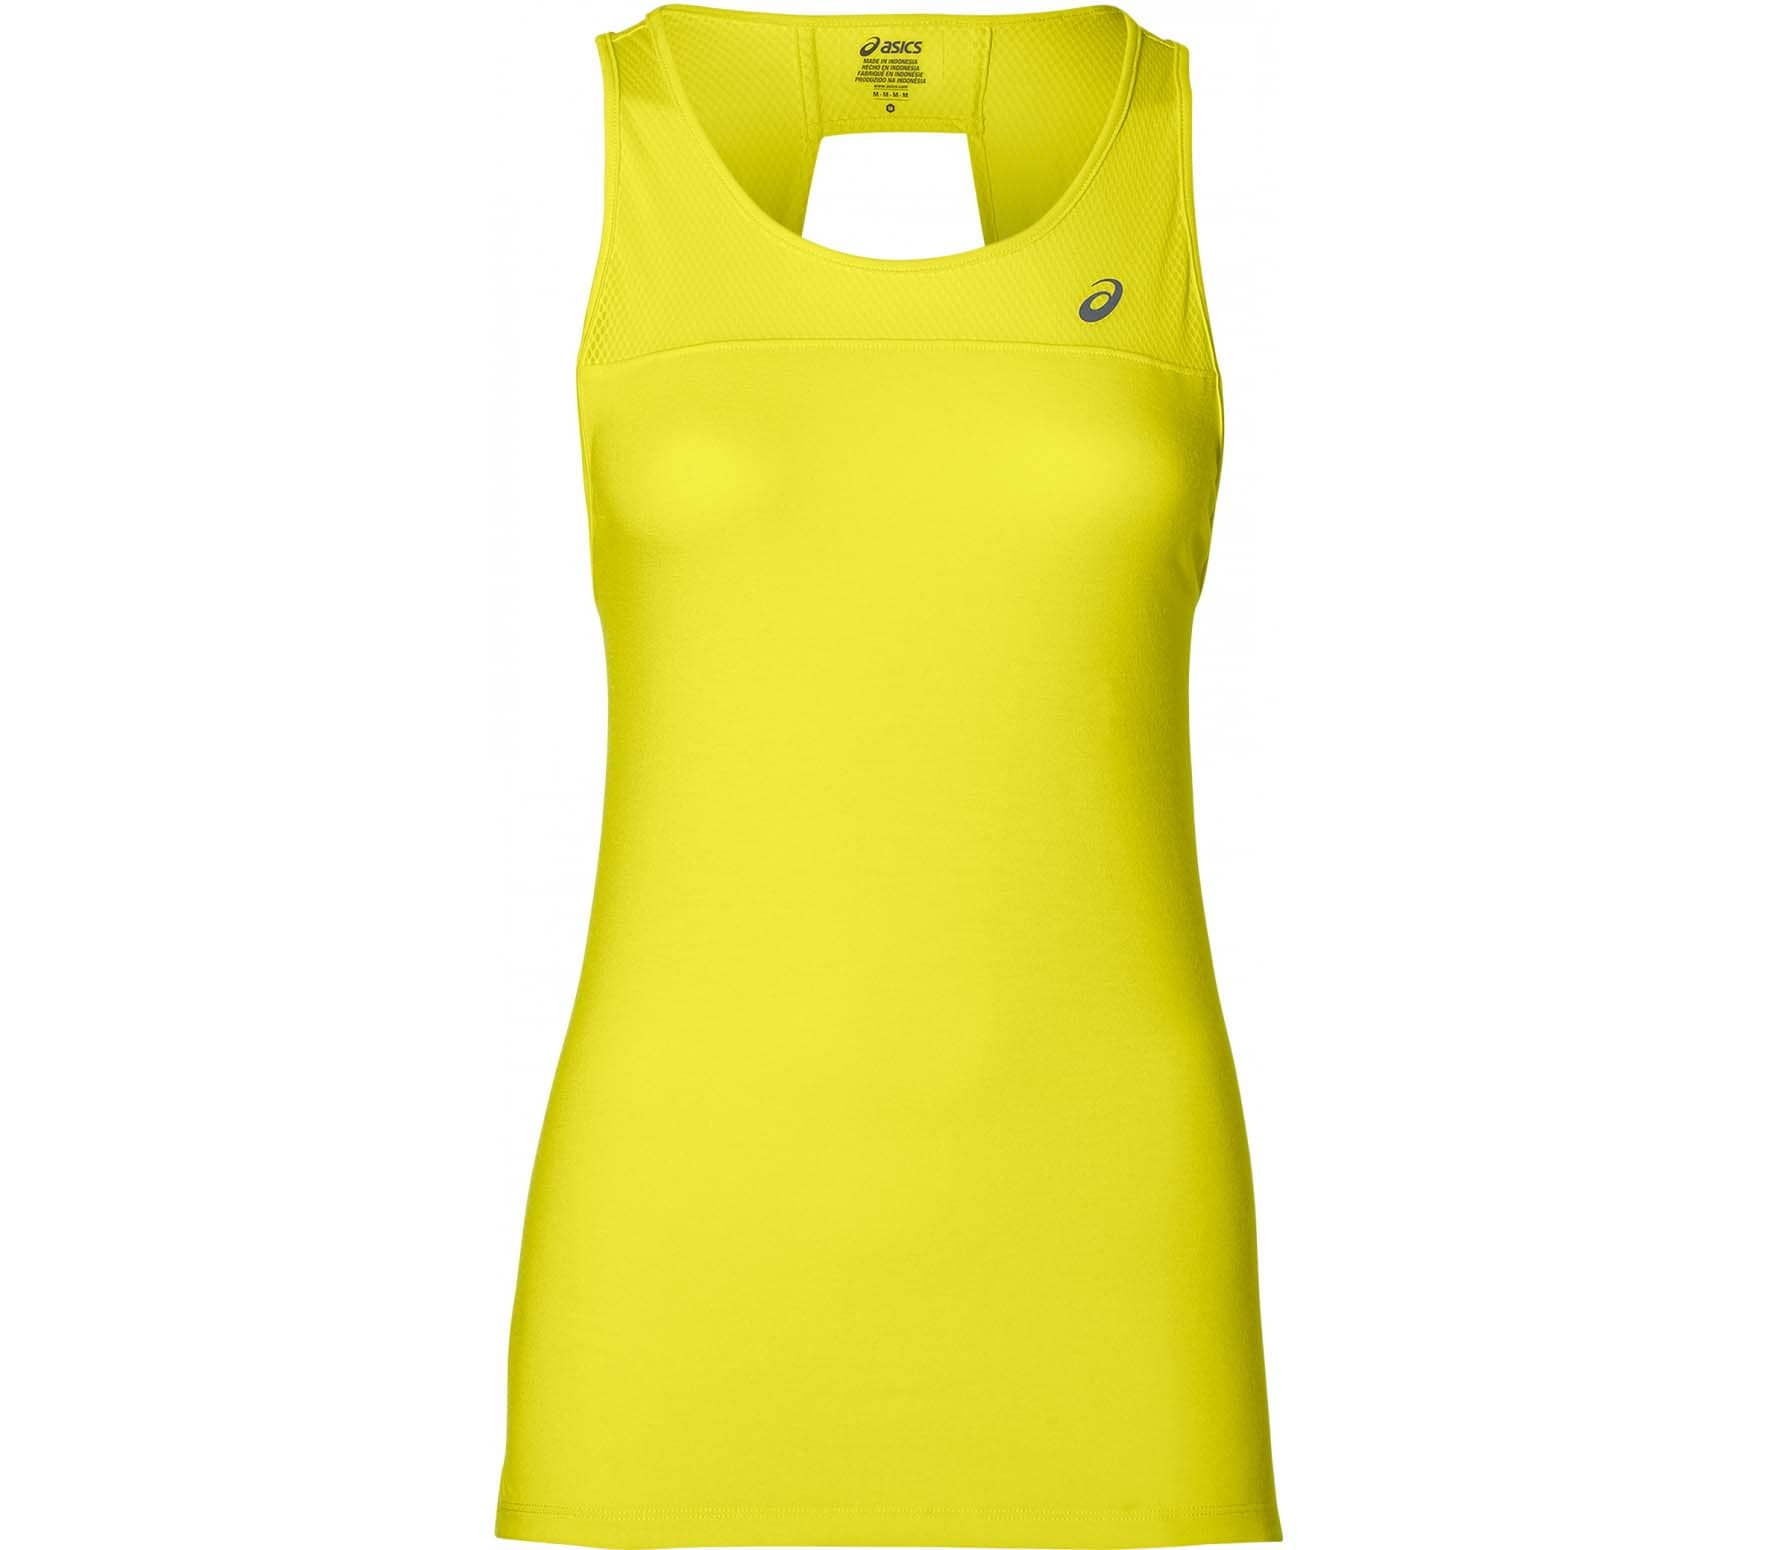 385b3a4668bd ASICS - Loose Strappy women s running tank top top (yellow) - buy it ...